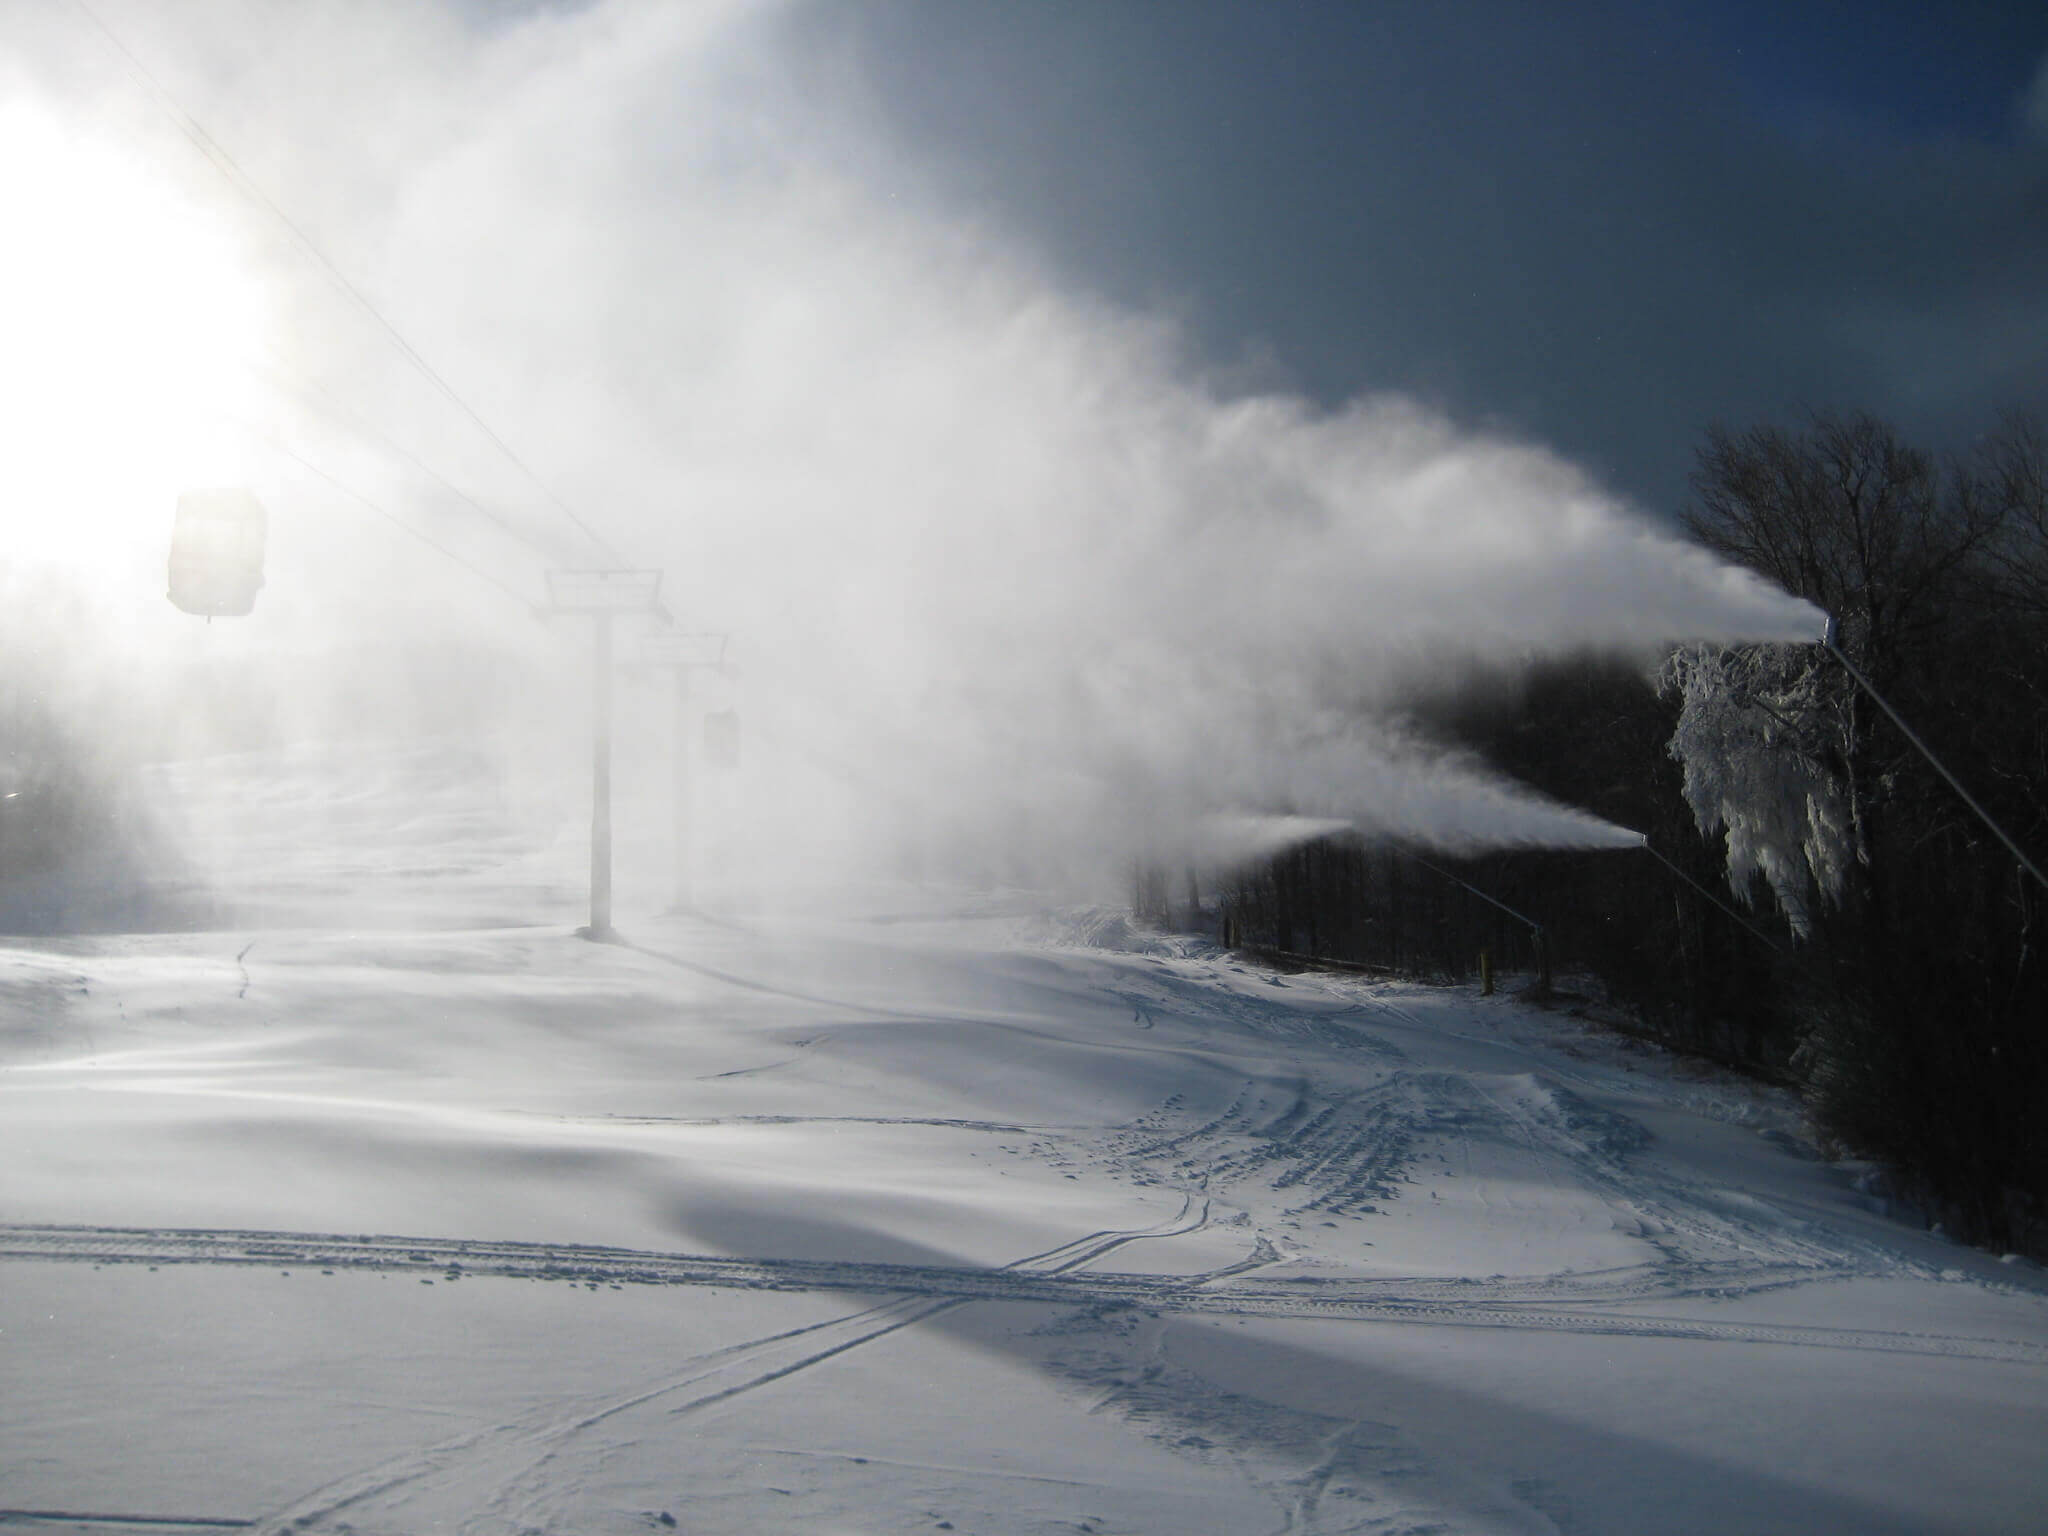 Ice usage in snowmaking